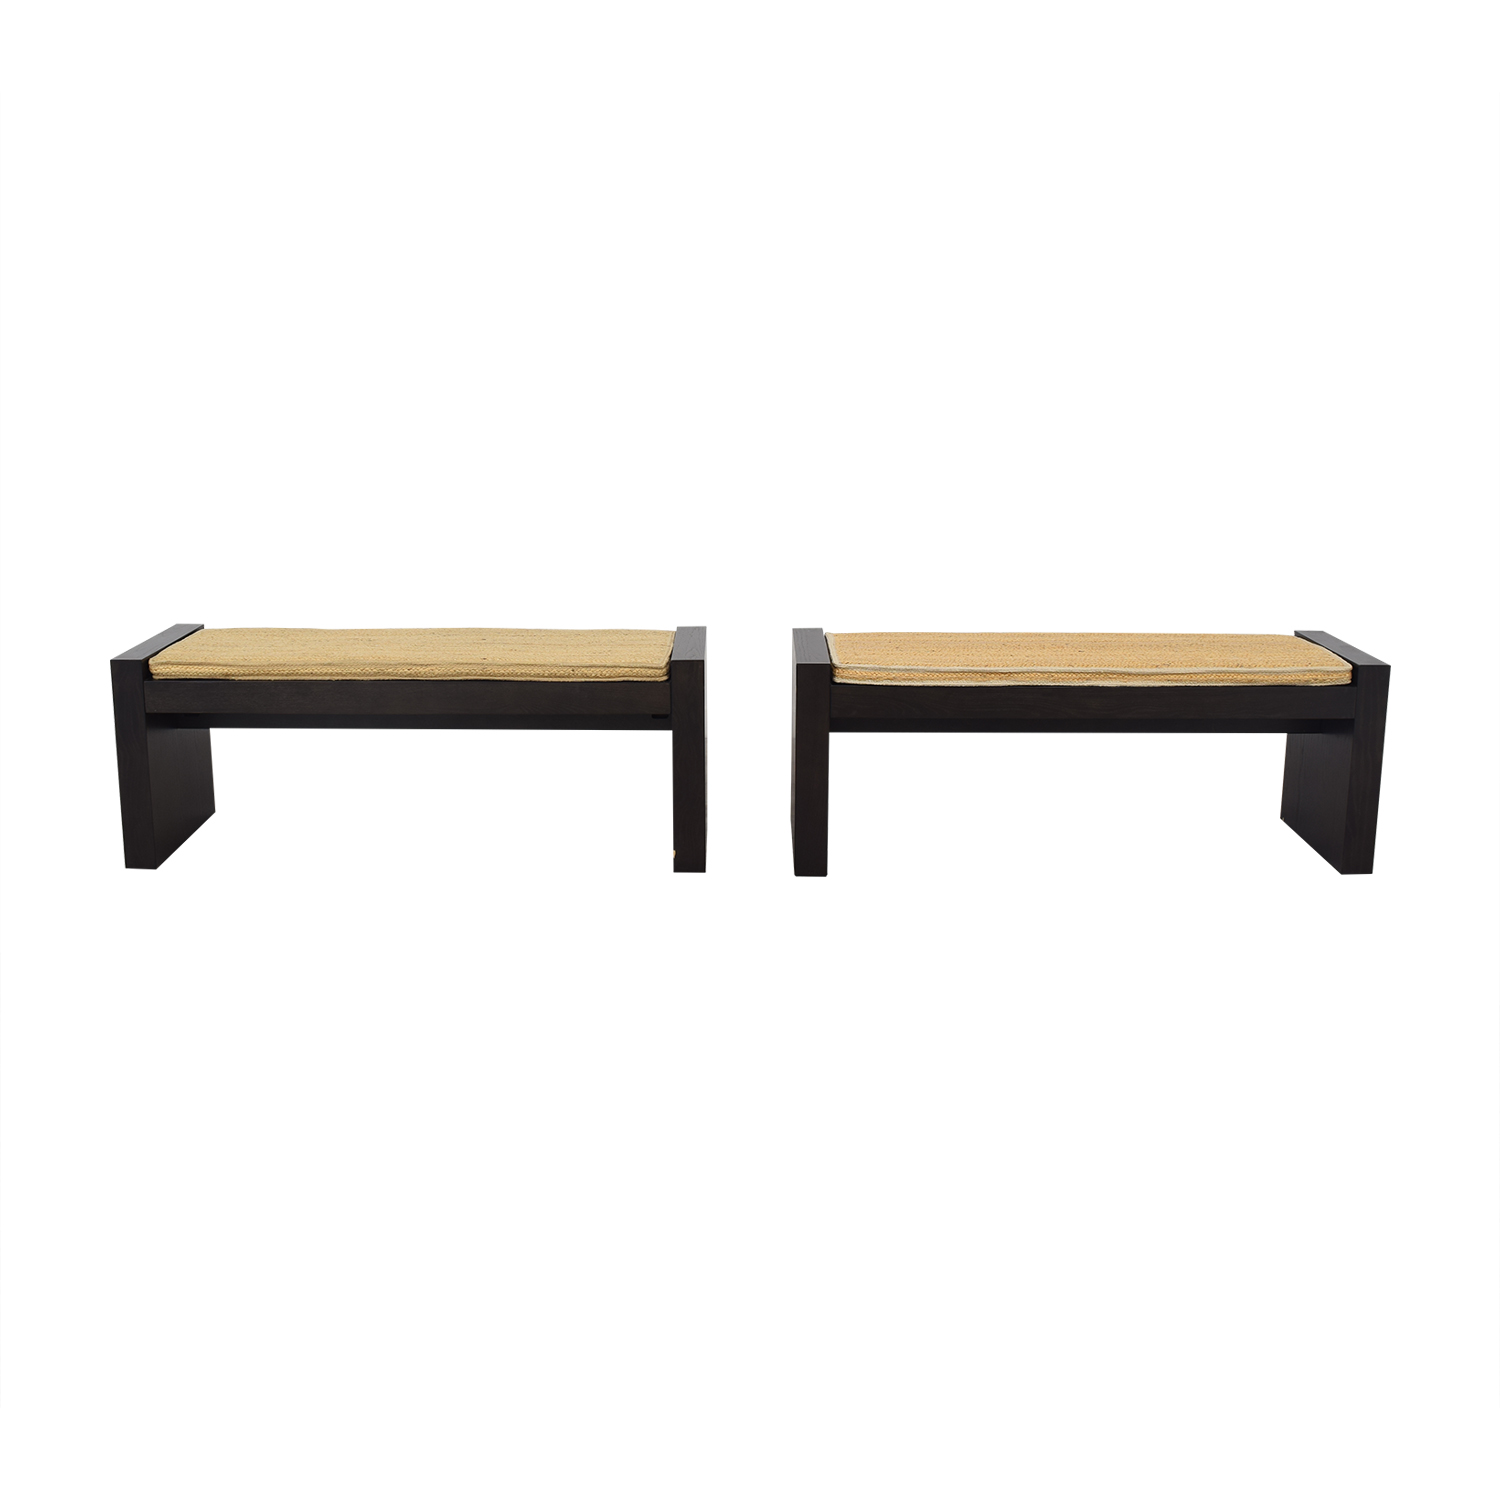 West Elm Terra Dining Benches with Woven Cushions / Benches